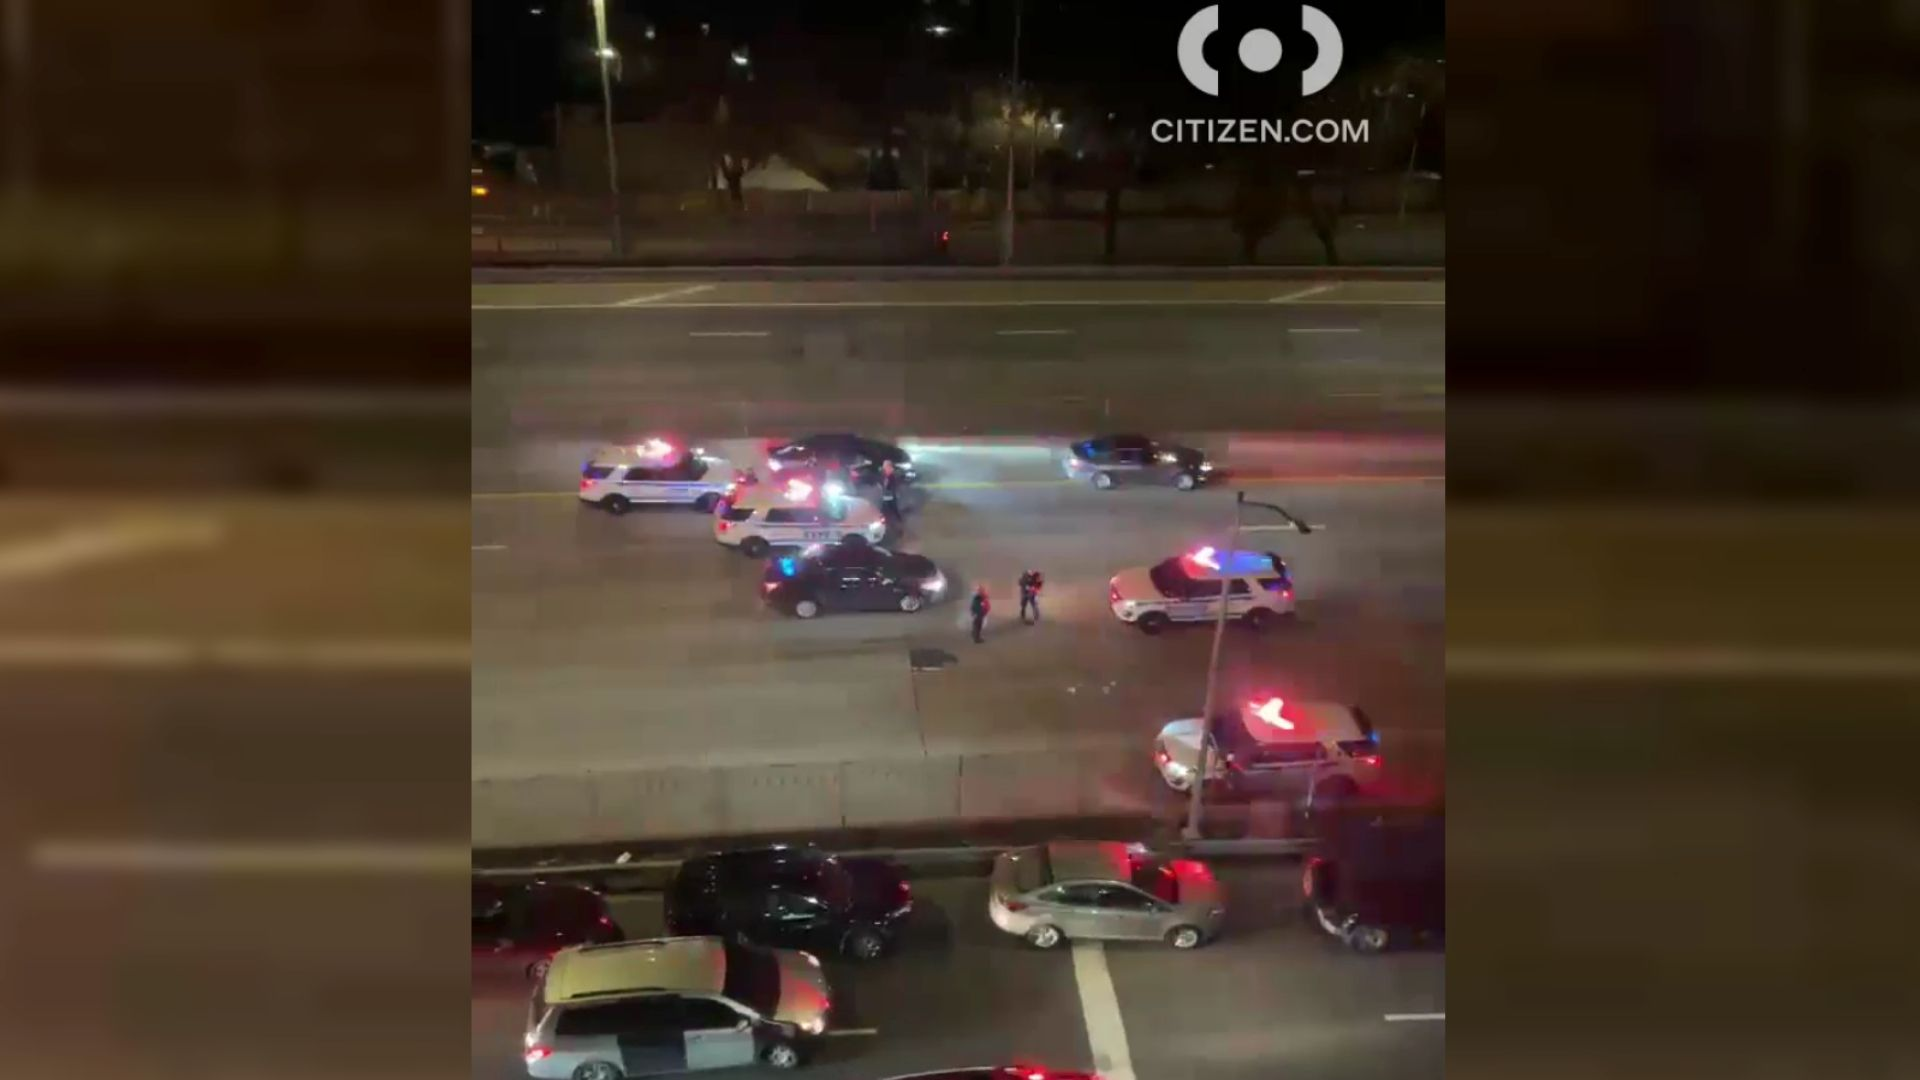 Police on the scene after a man, 24, was fatally shot in his car by another driver on the Bruckner Expressway in the Bronx late Tuesday night, March 30, 2021, according to the NYPD. (Citizen App)